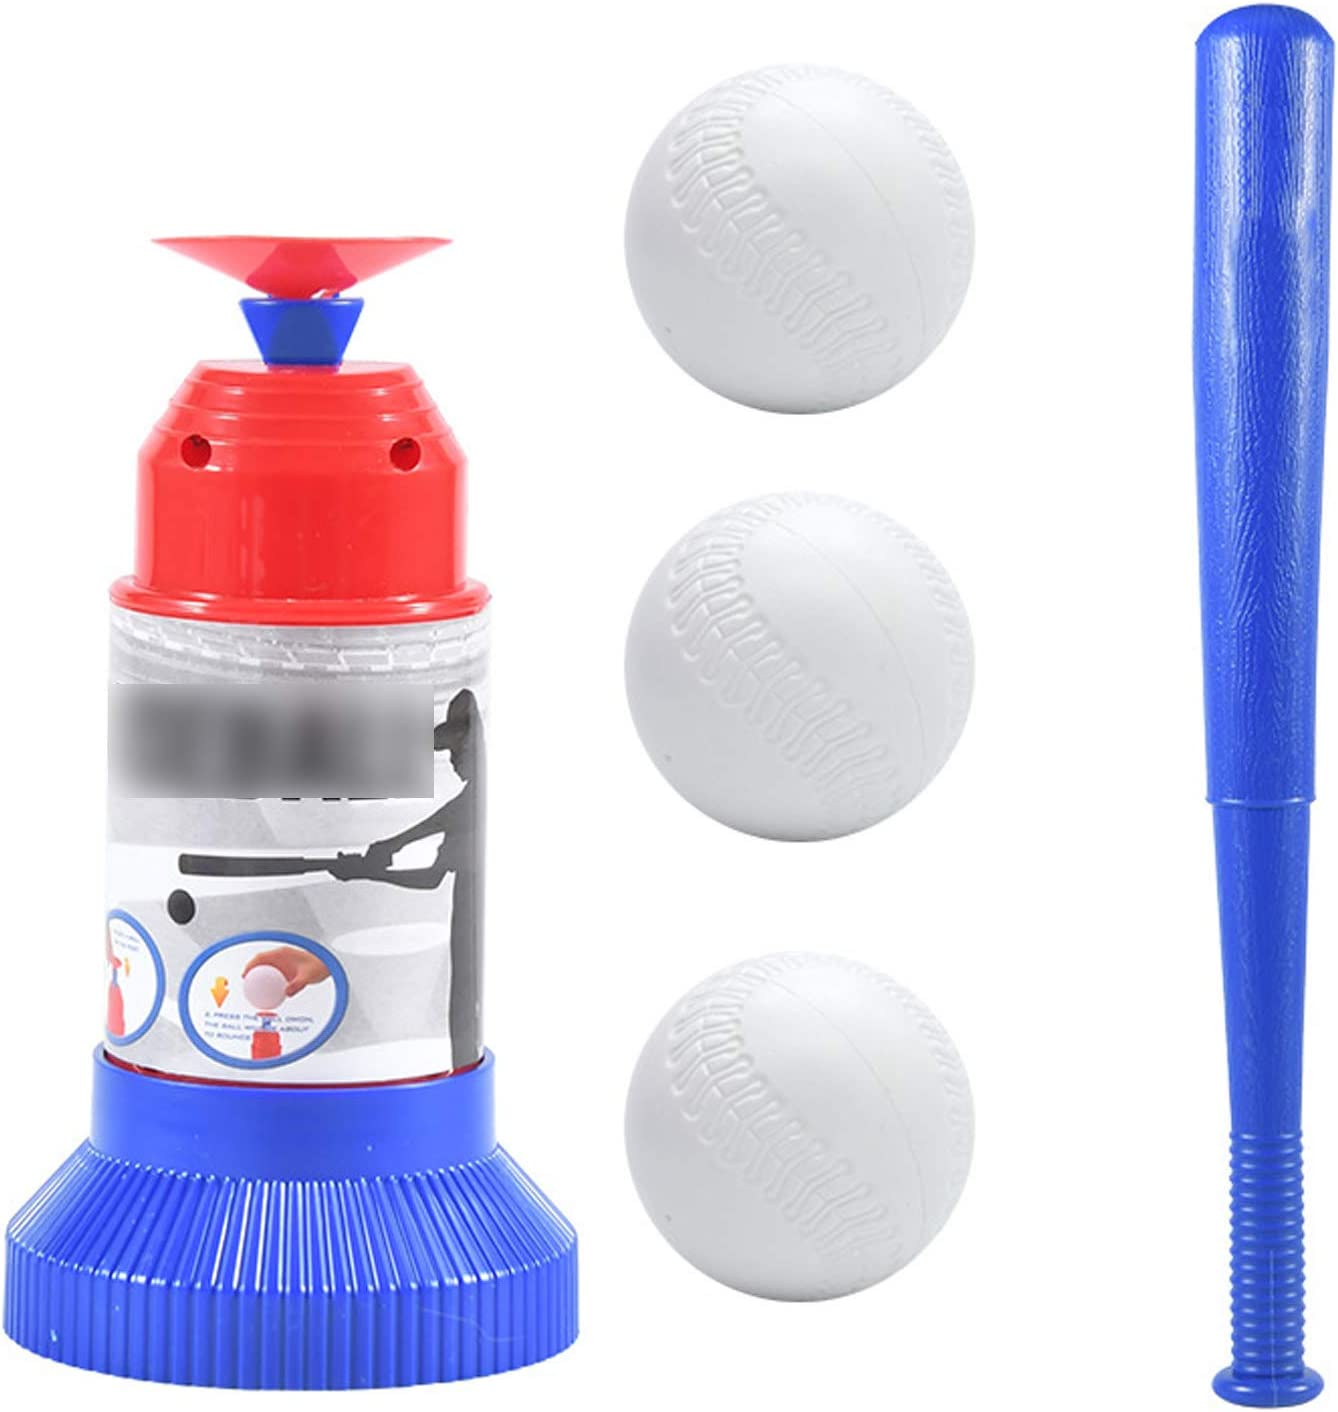 Max 49% OFF Children's Baseball Automatic Ball Toy Machine Catapult 55% OFF Outdoor